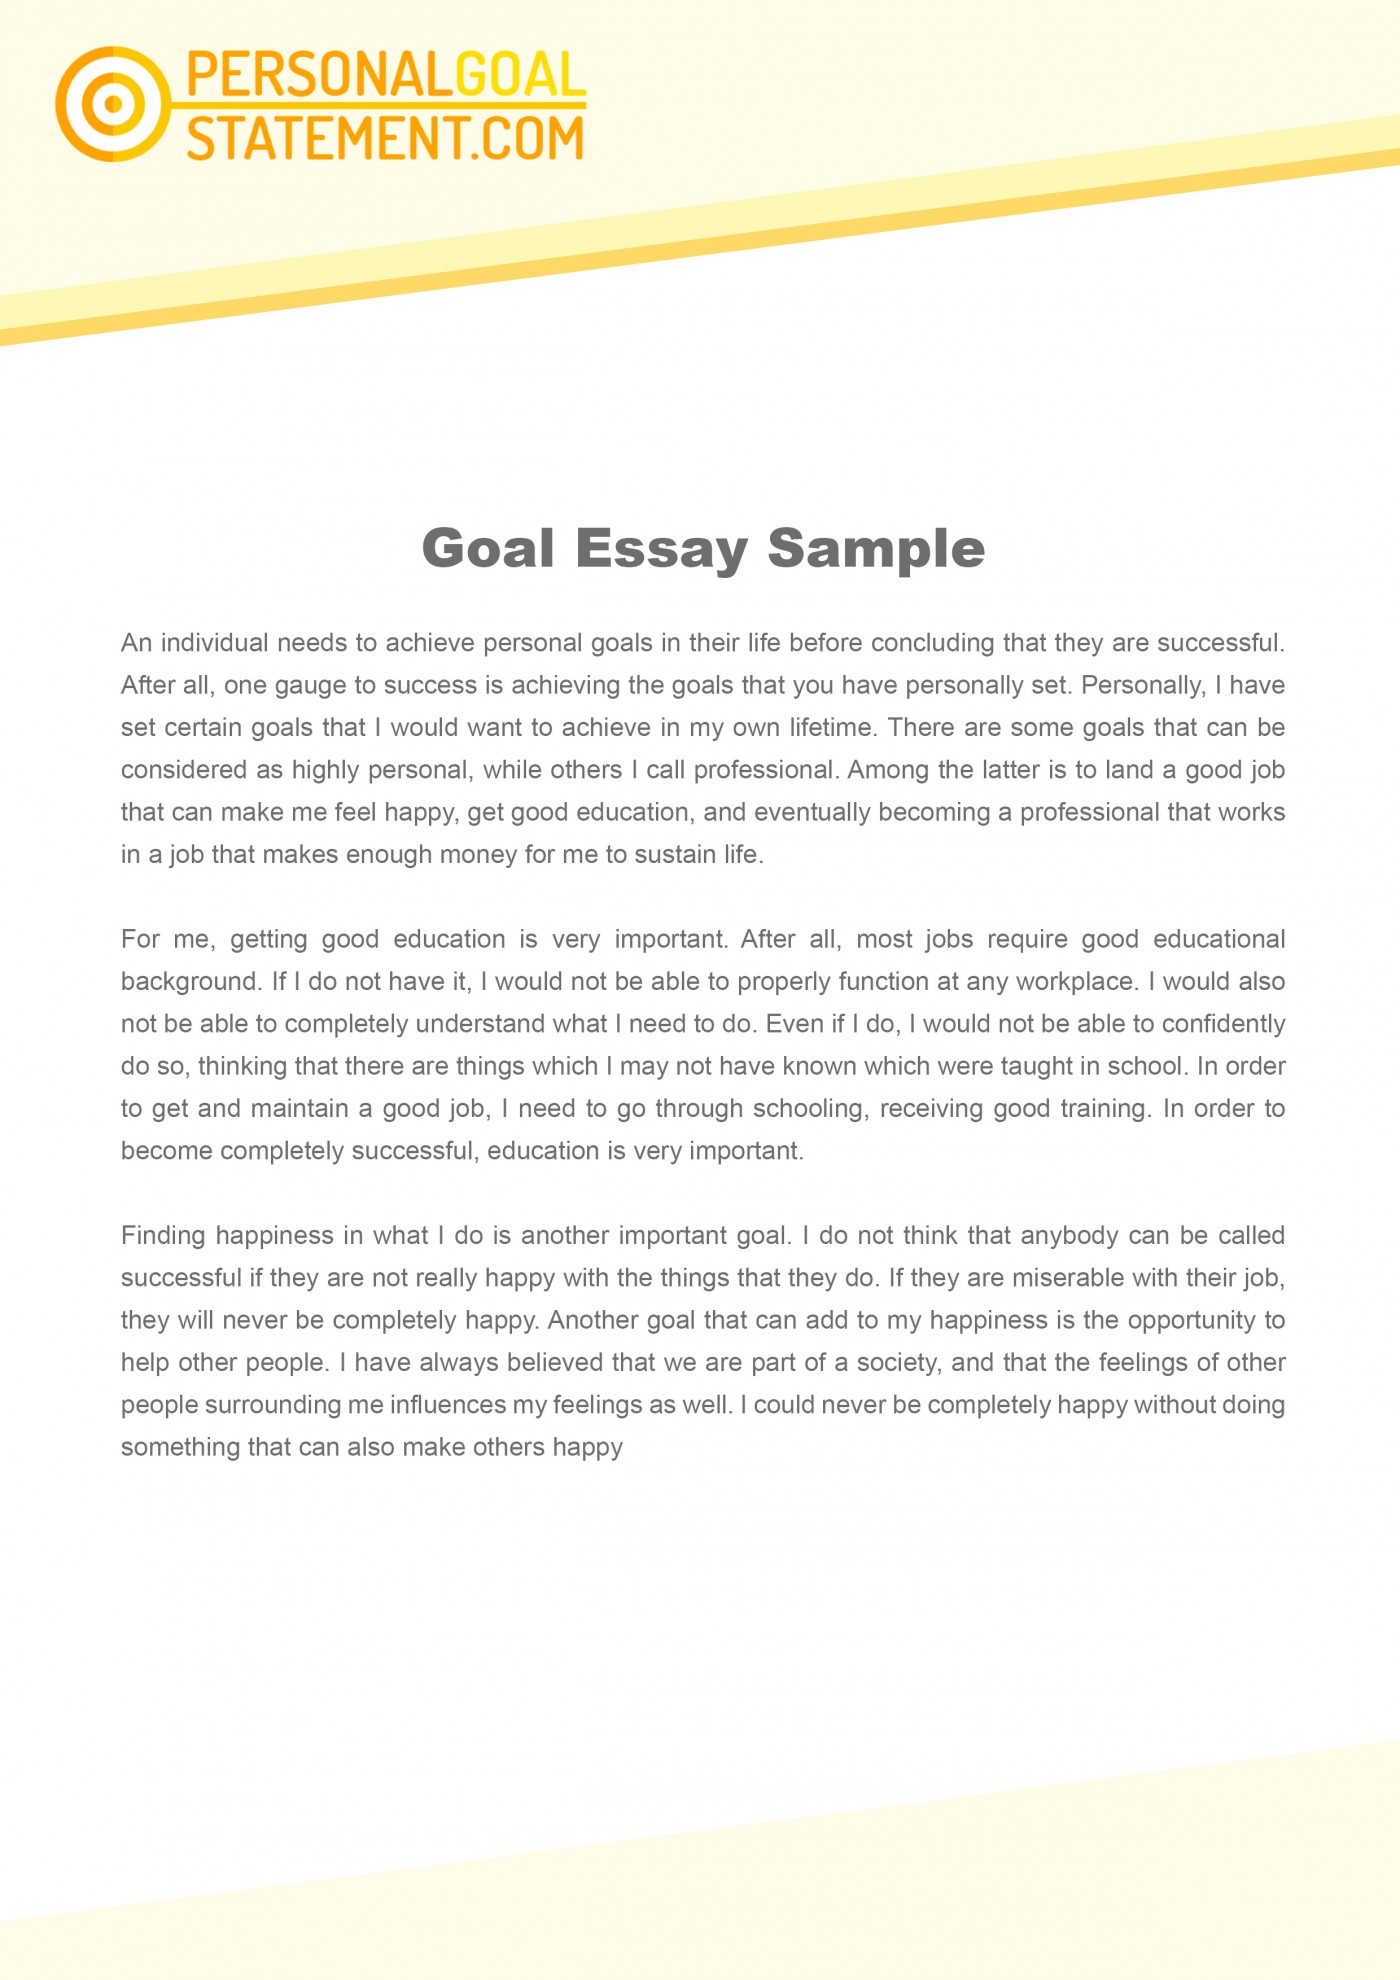 011 Essay Example Goals Career Goal Uniforms Debate Personal Examples L Awesome Mba Consulting Academic For College Sample 1400